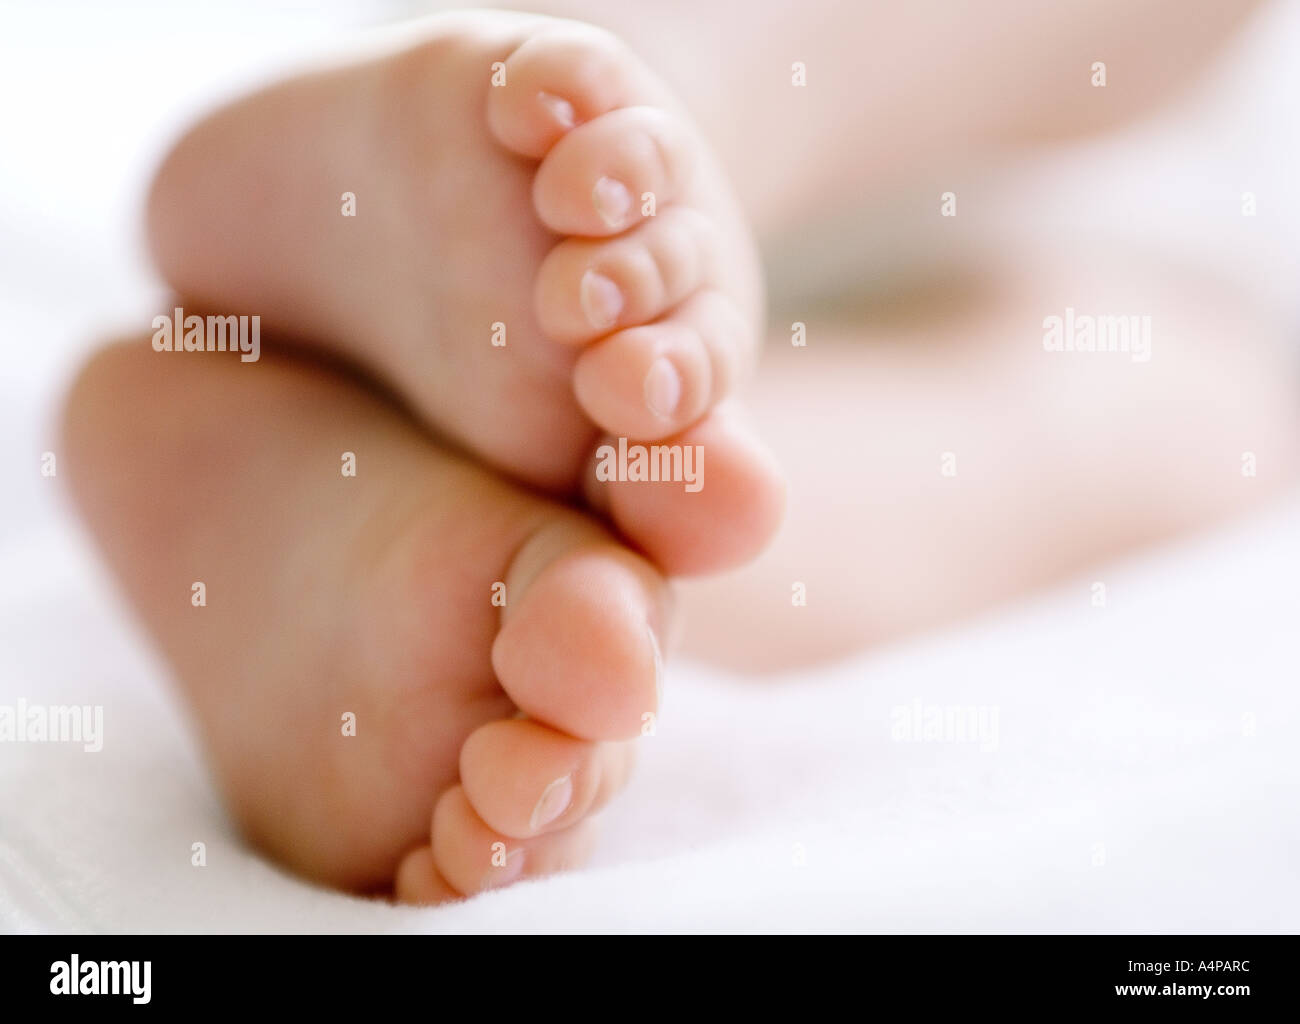 babys feet 7 month old,seven month old Stock Photo: 6342139 - Alamy